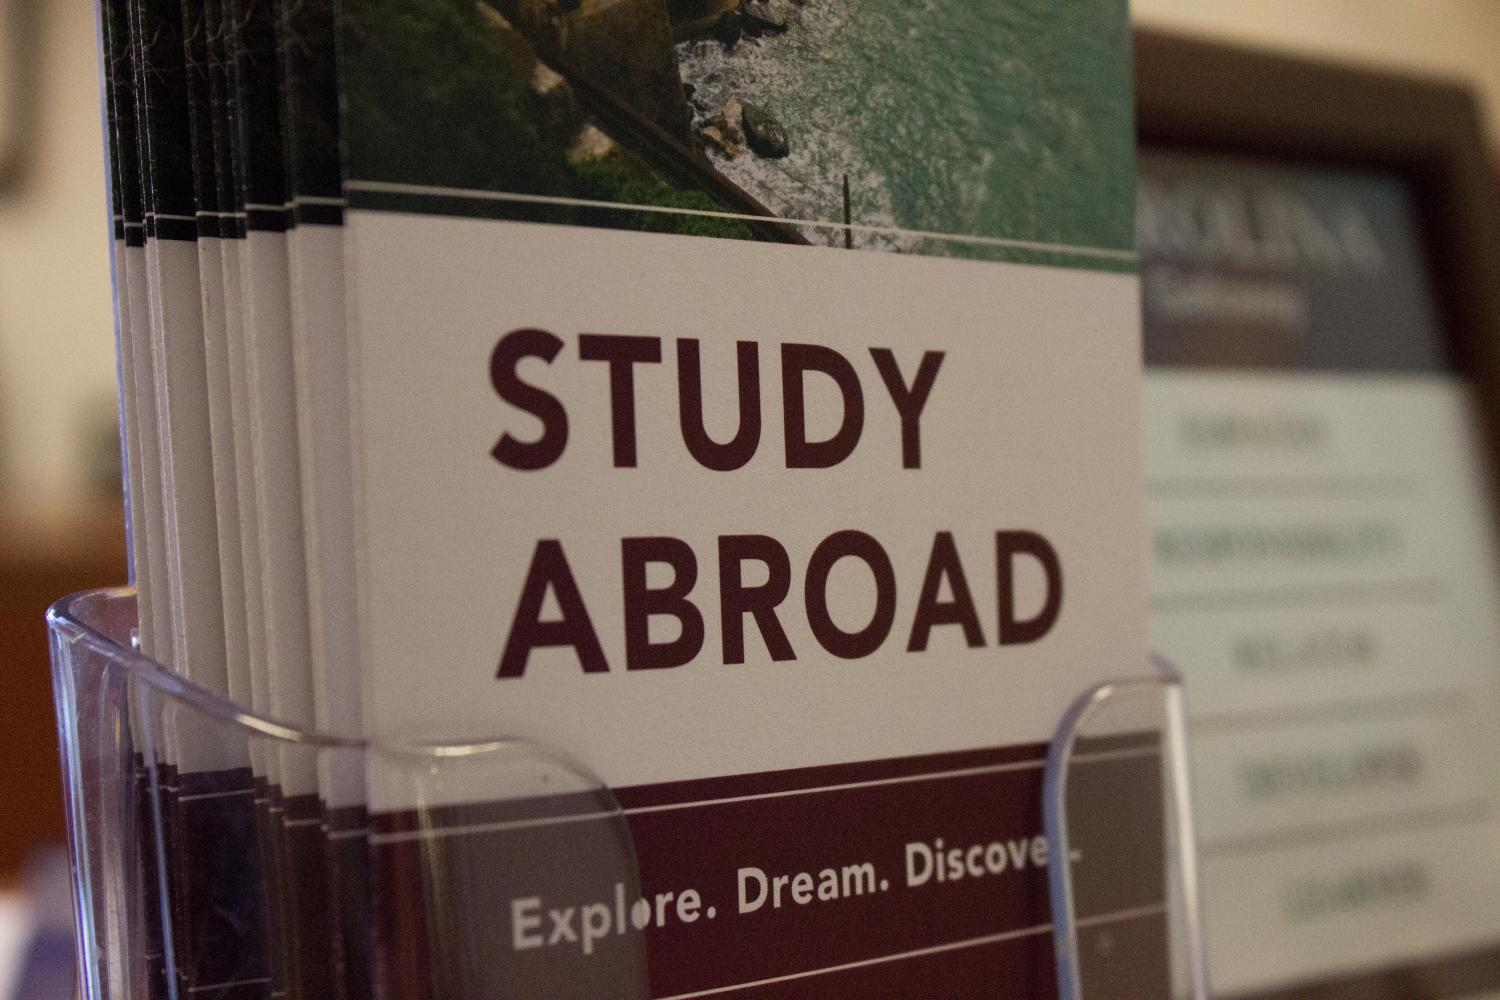 Students can get more information about study abroad through the office of study abroad located in 115A.